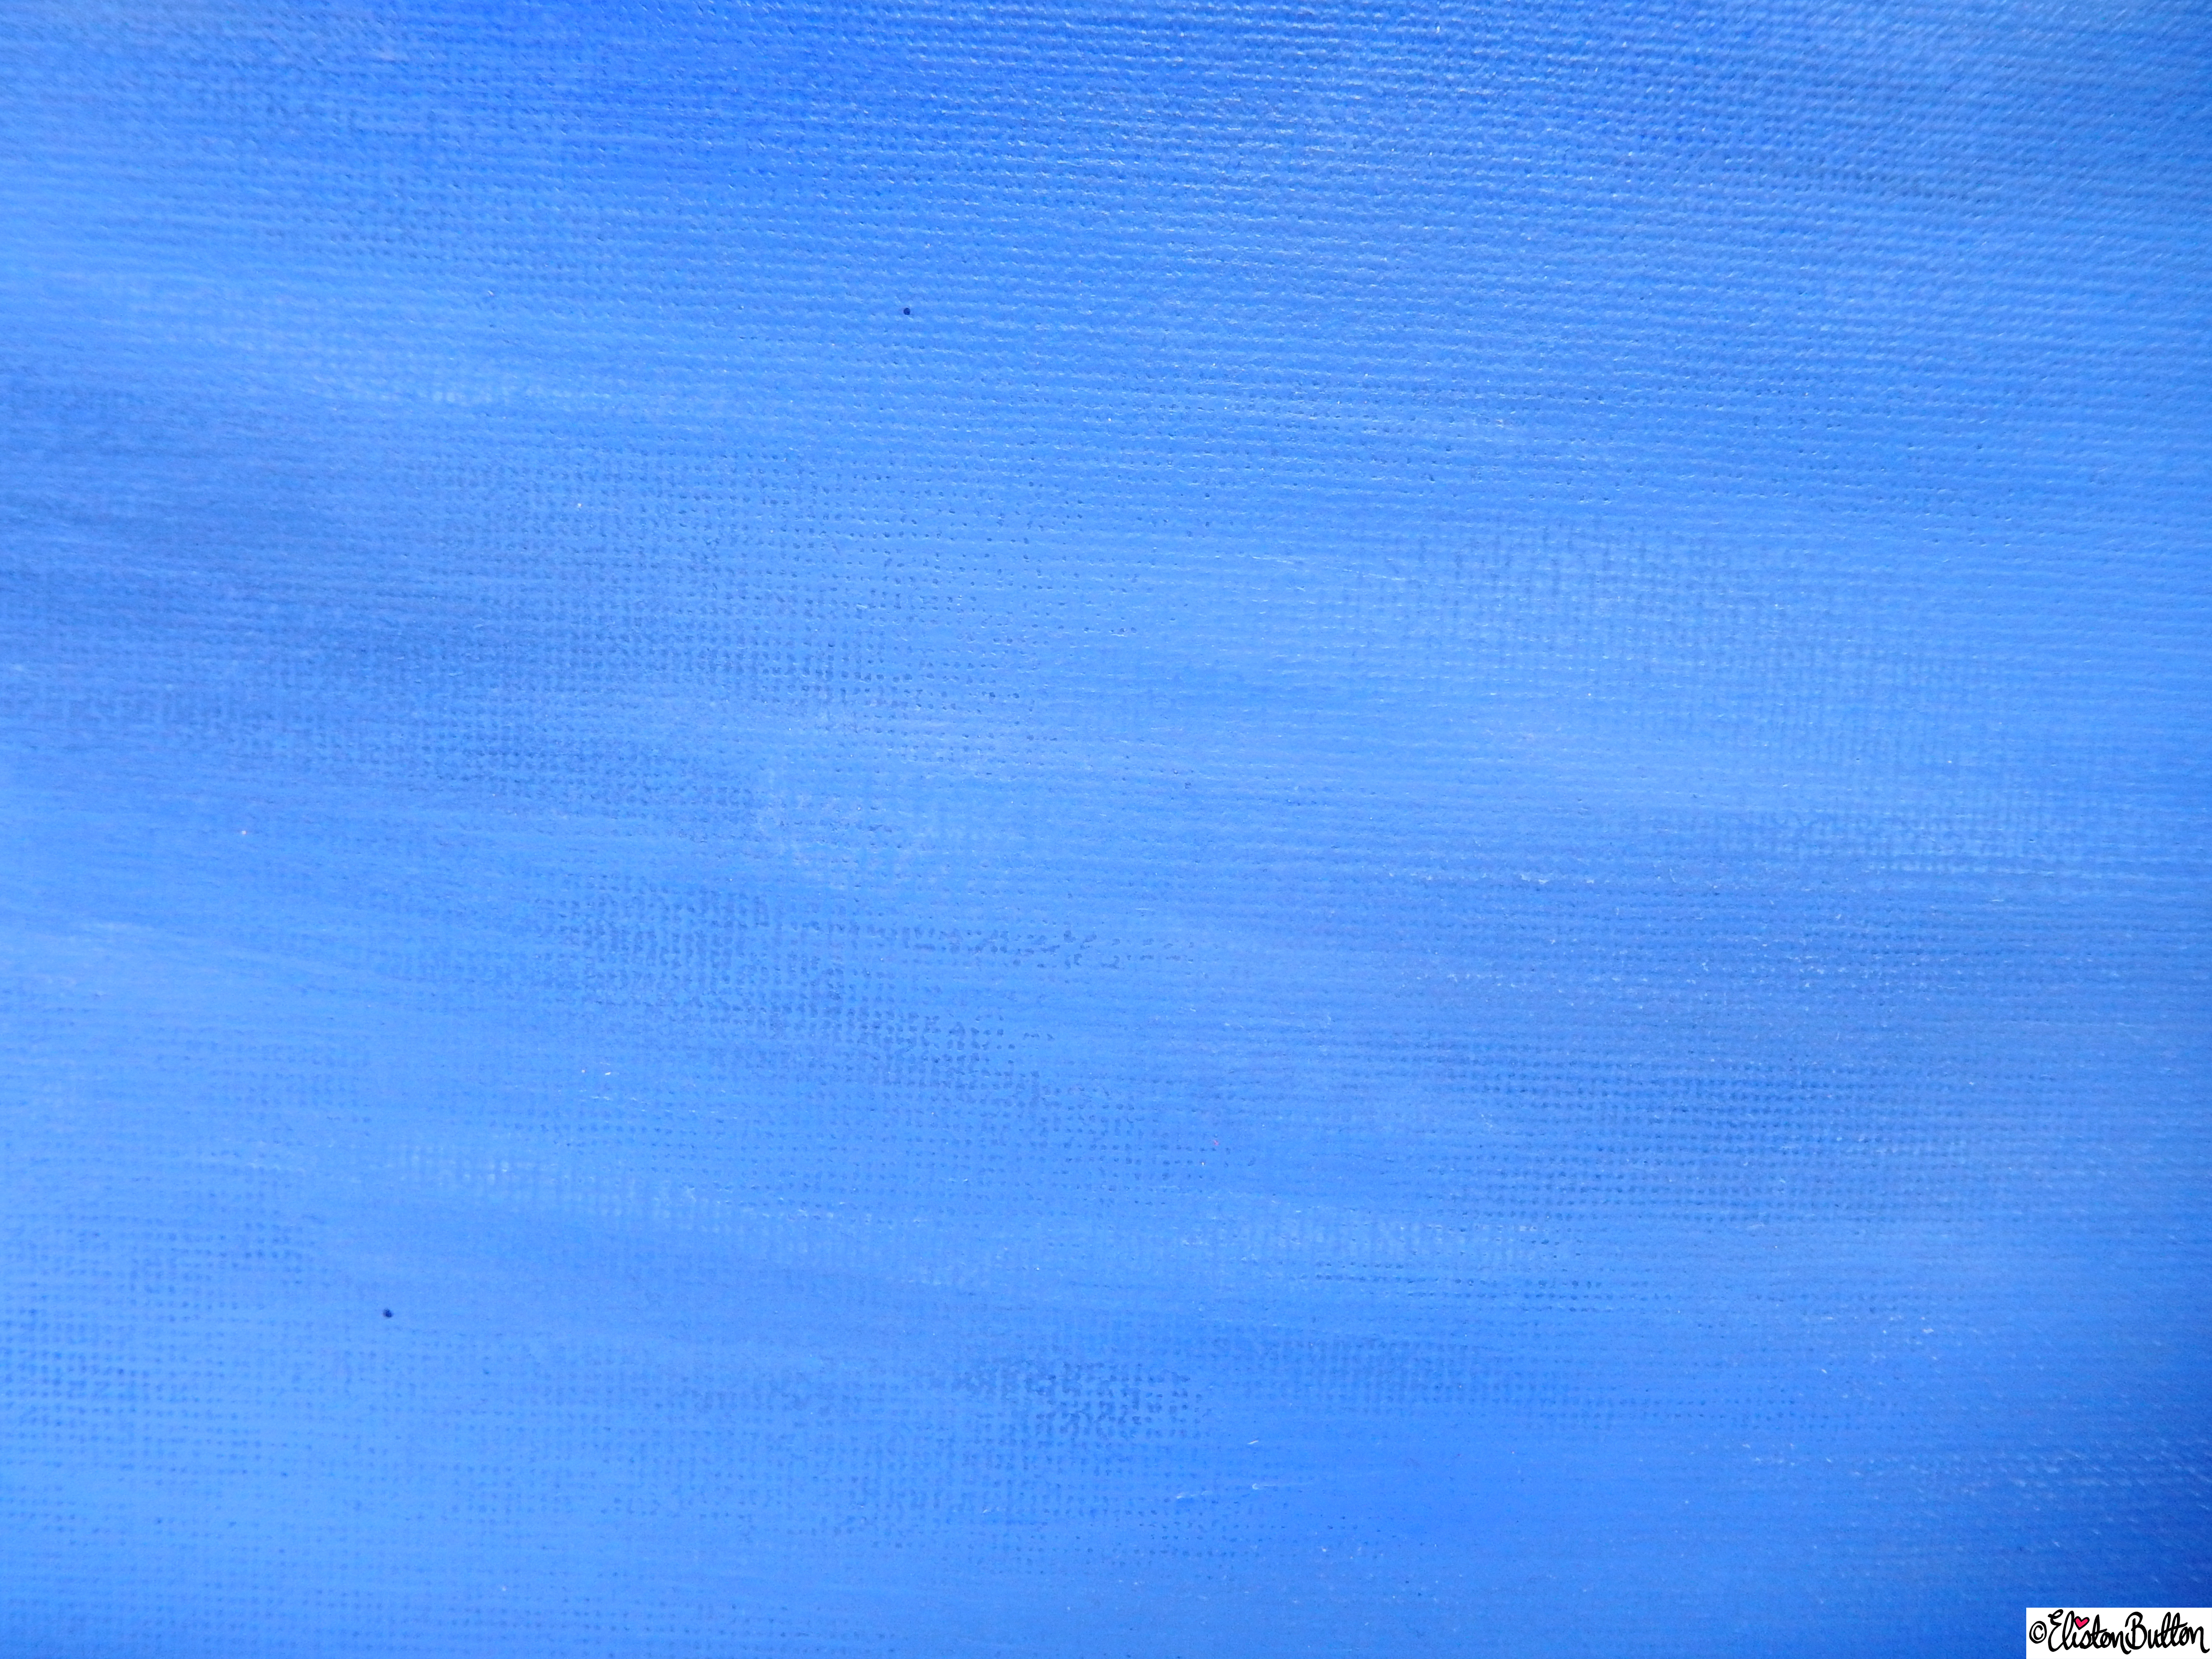 Summer Skies Blue Painted Canvas  - Brush Strokes Close Up - Create 28 - No. 16, 17 & 18 - Sea and Sky Painted Canvases at www.elistonbutton.com - Eliston Button - That Crafty Kid – Art, Design, Craft & Adventure.